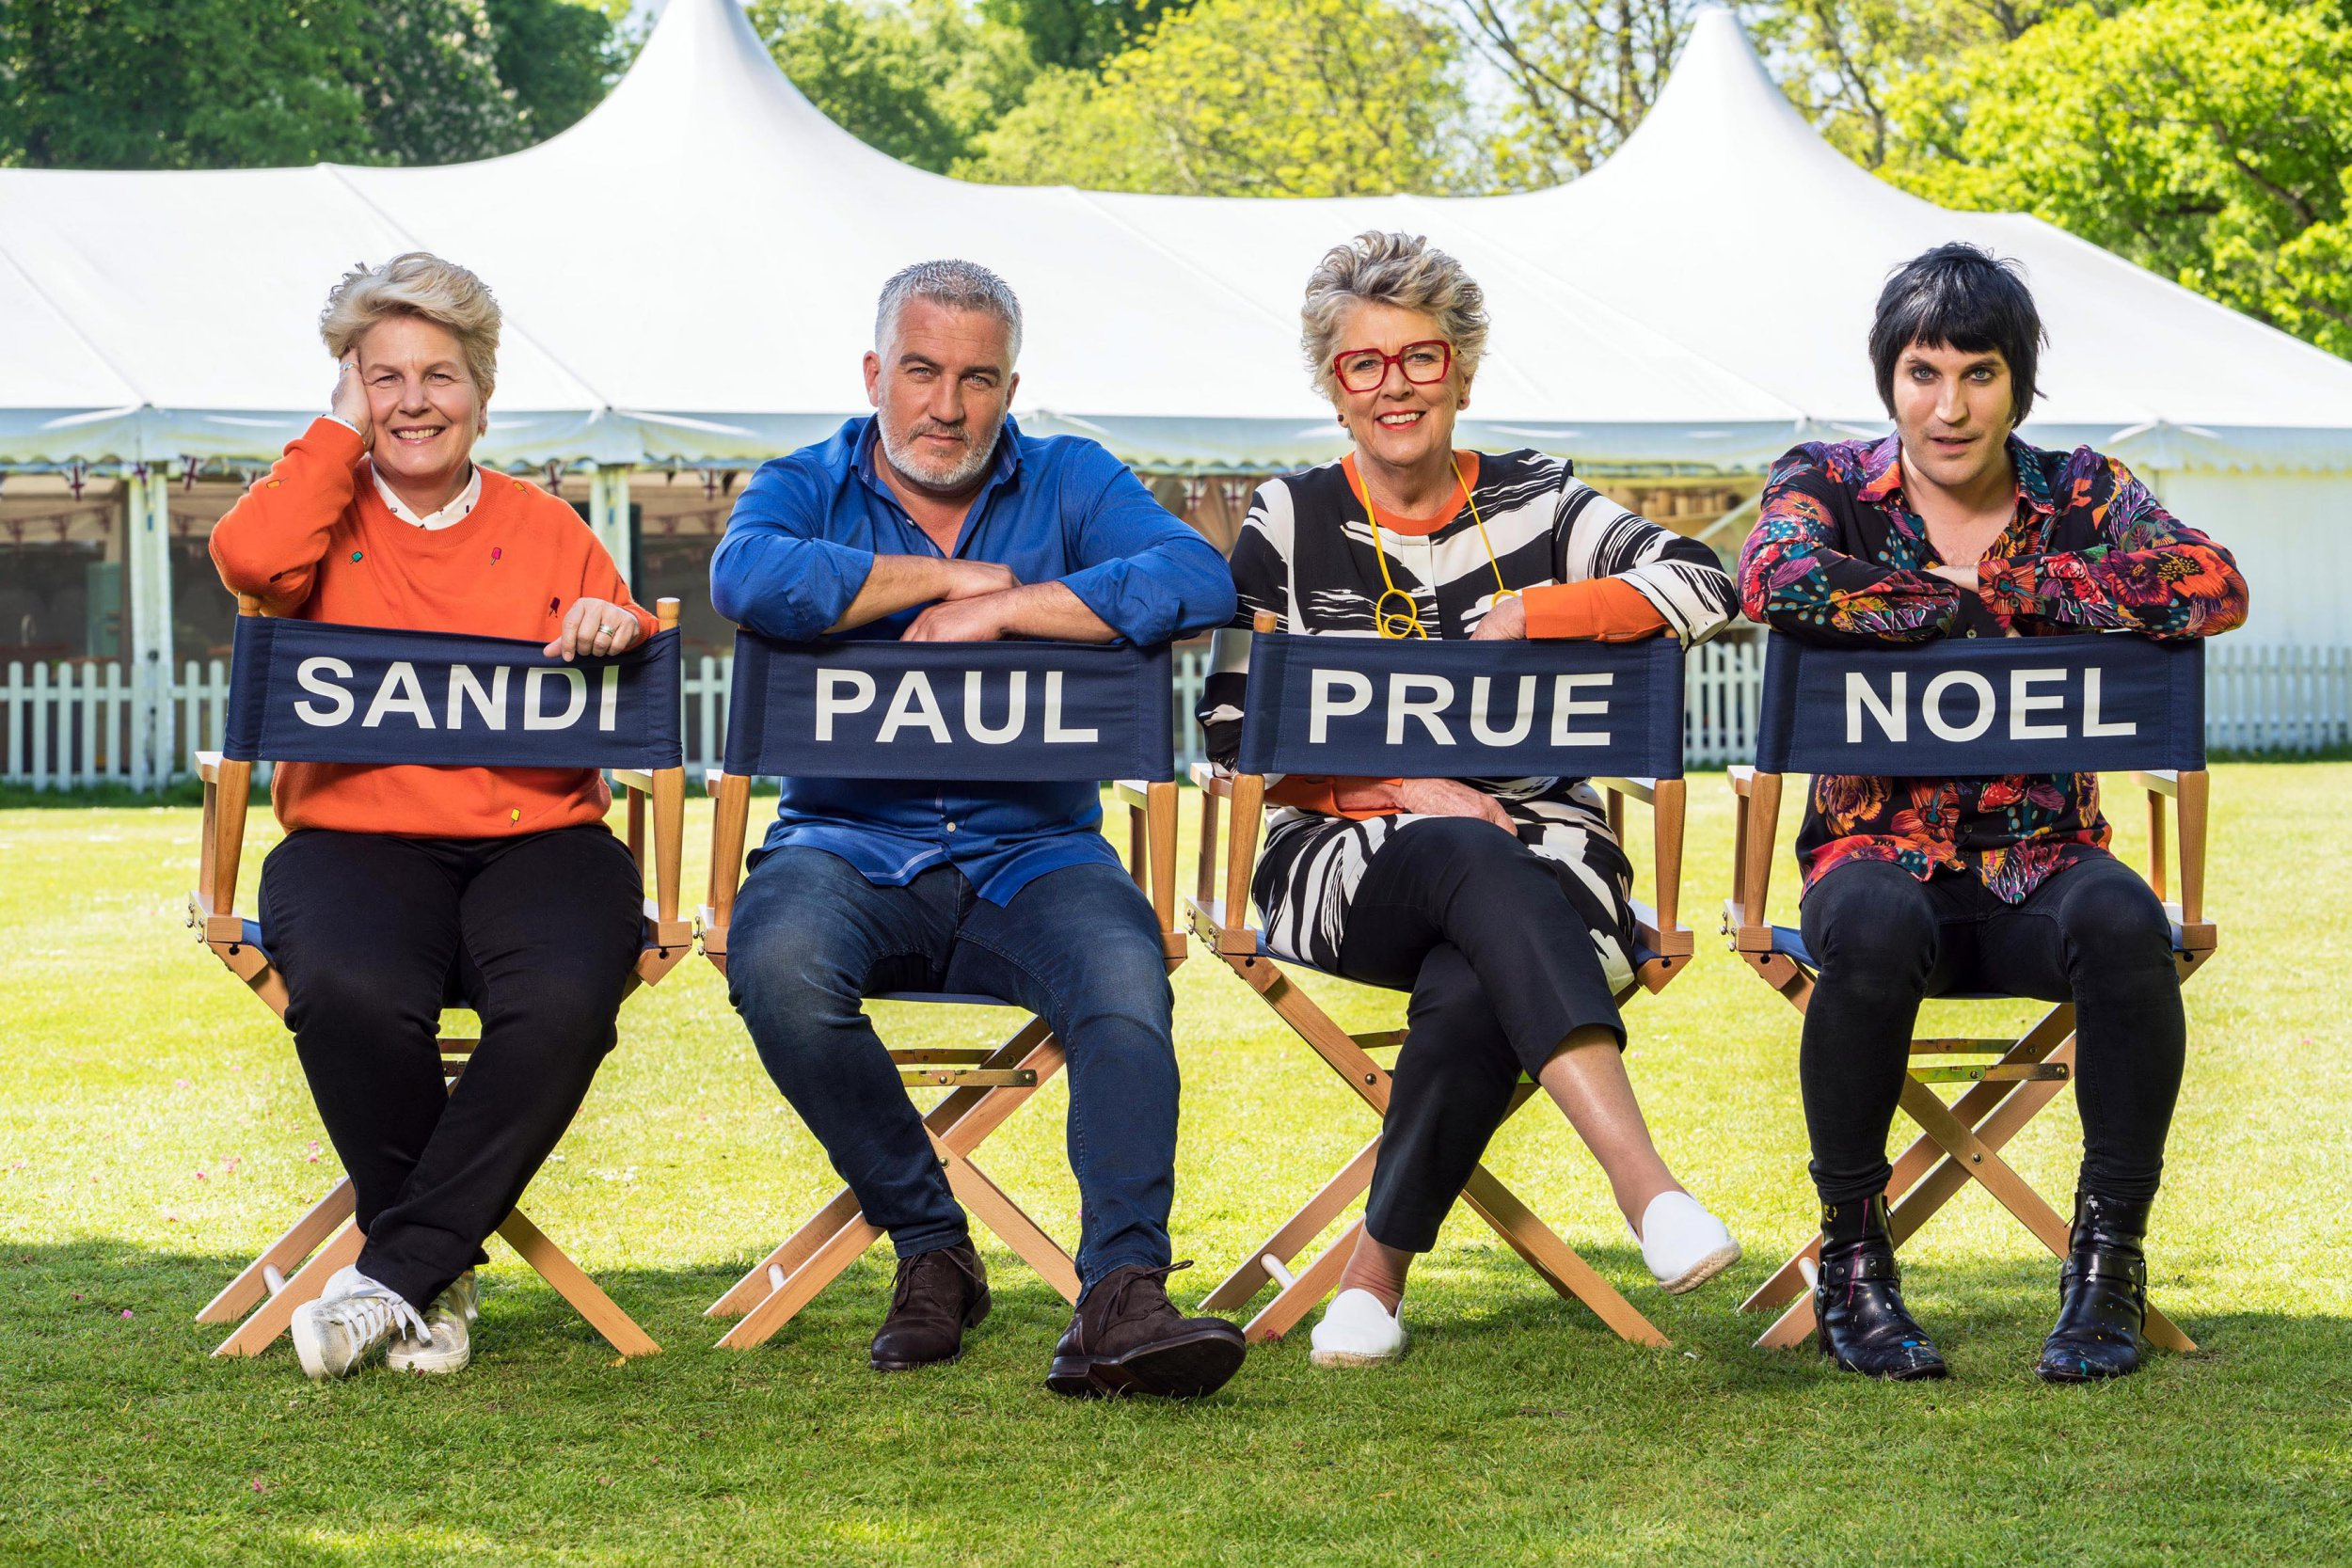 The Great British Bake Off (2018).Talent Specials: - Presenters and Judges: left to right - Sandi Toksvig, Paul Hollywood, Prue Leith and Noel fielding.